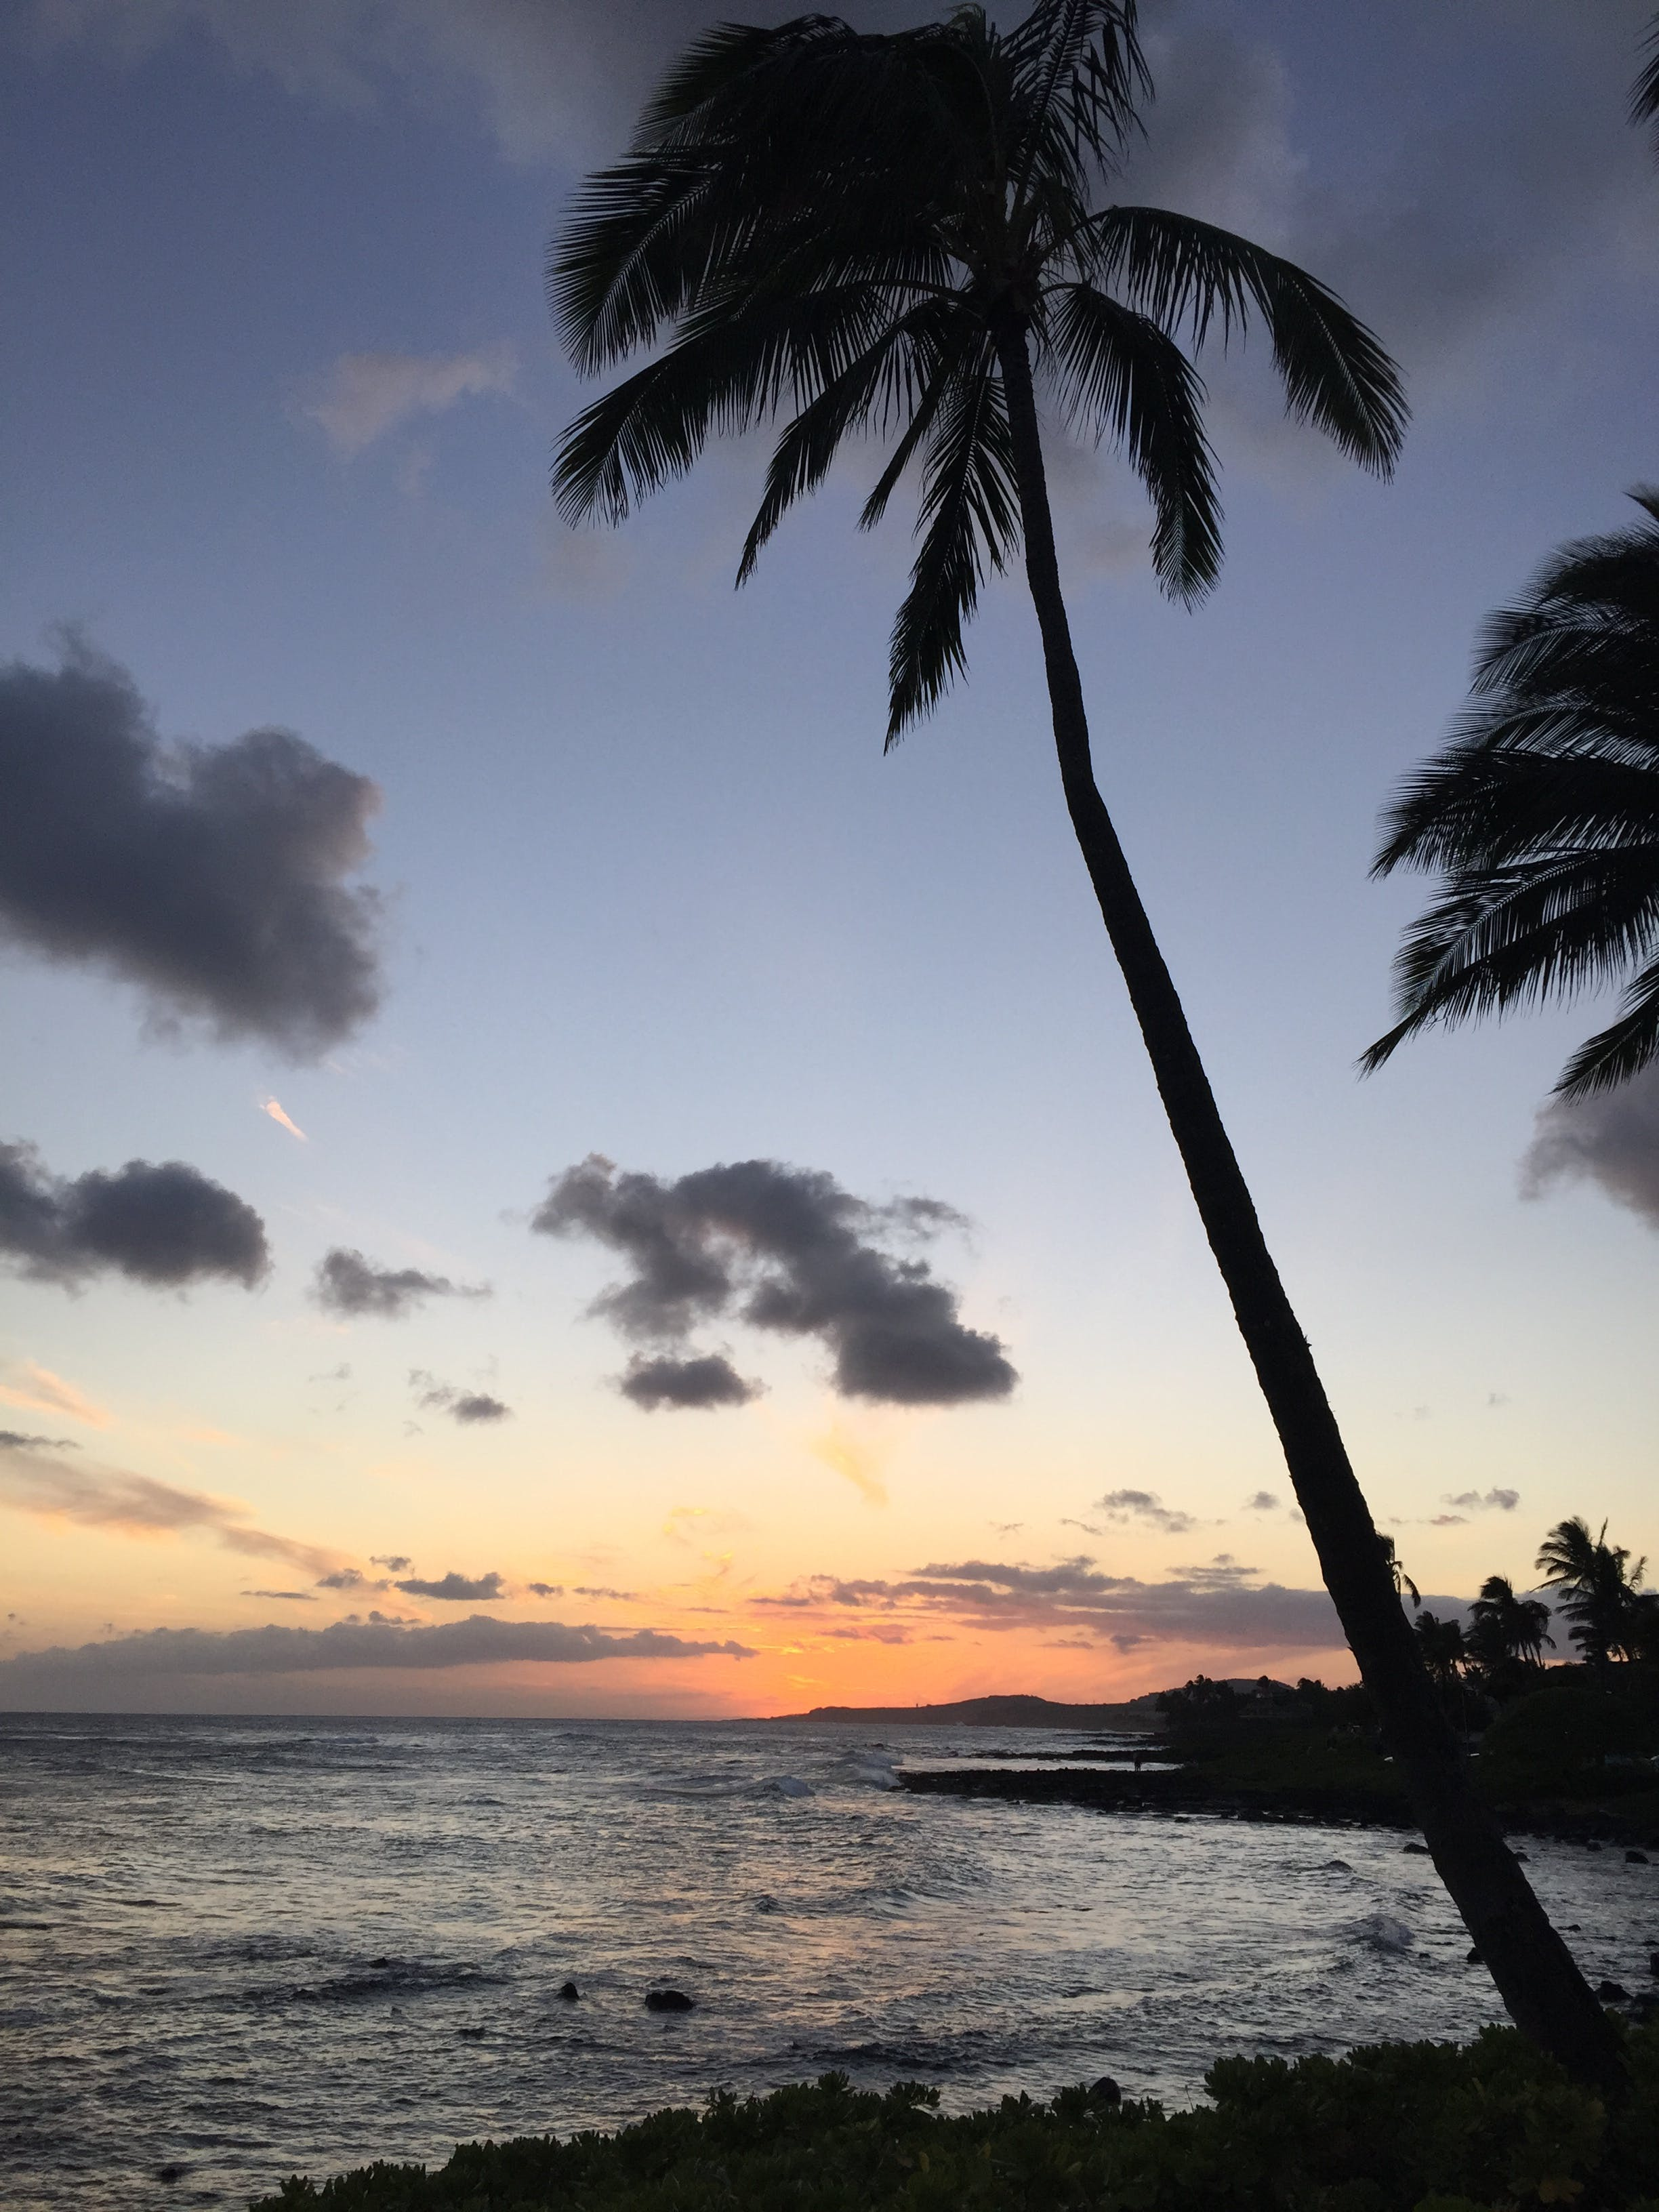 Coconut Palm Tree Near Ocean during Sunrise